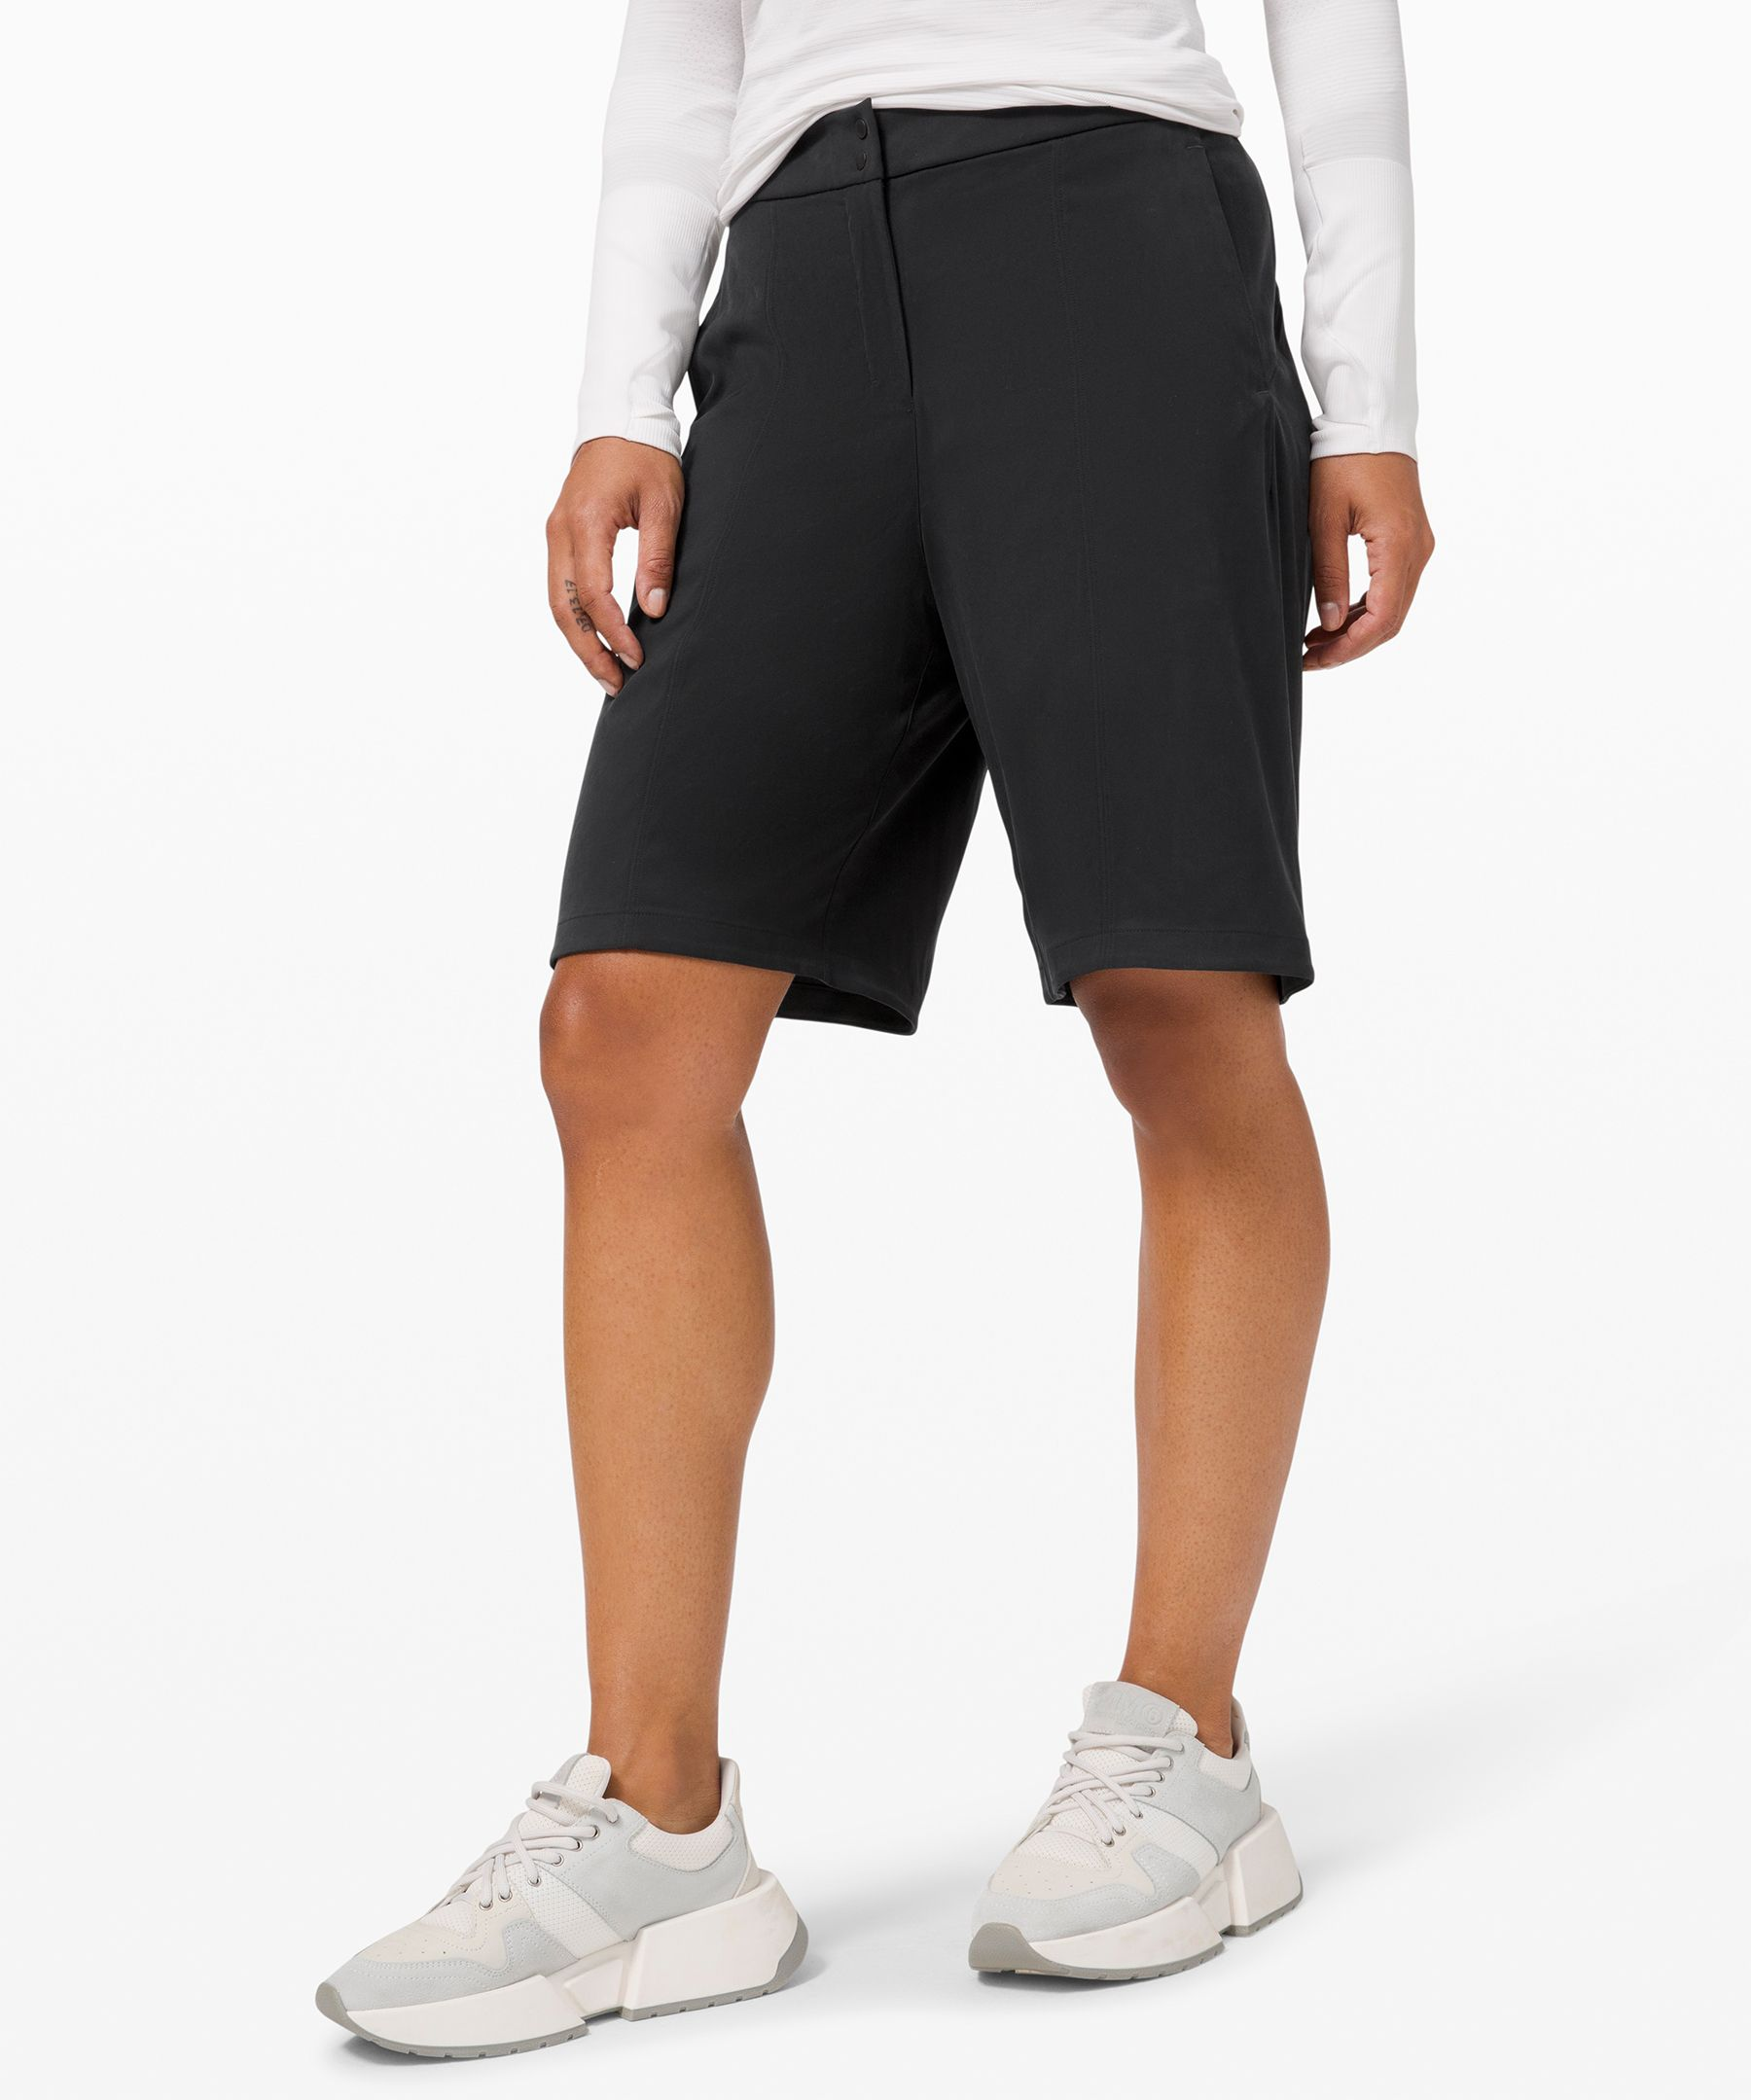 The not-too-short-short. Let\\\'s hear it for Bermuda-style shorts that feel just right in the office—and everywhere else.